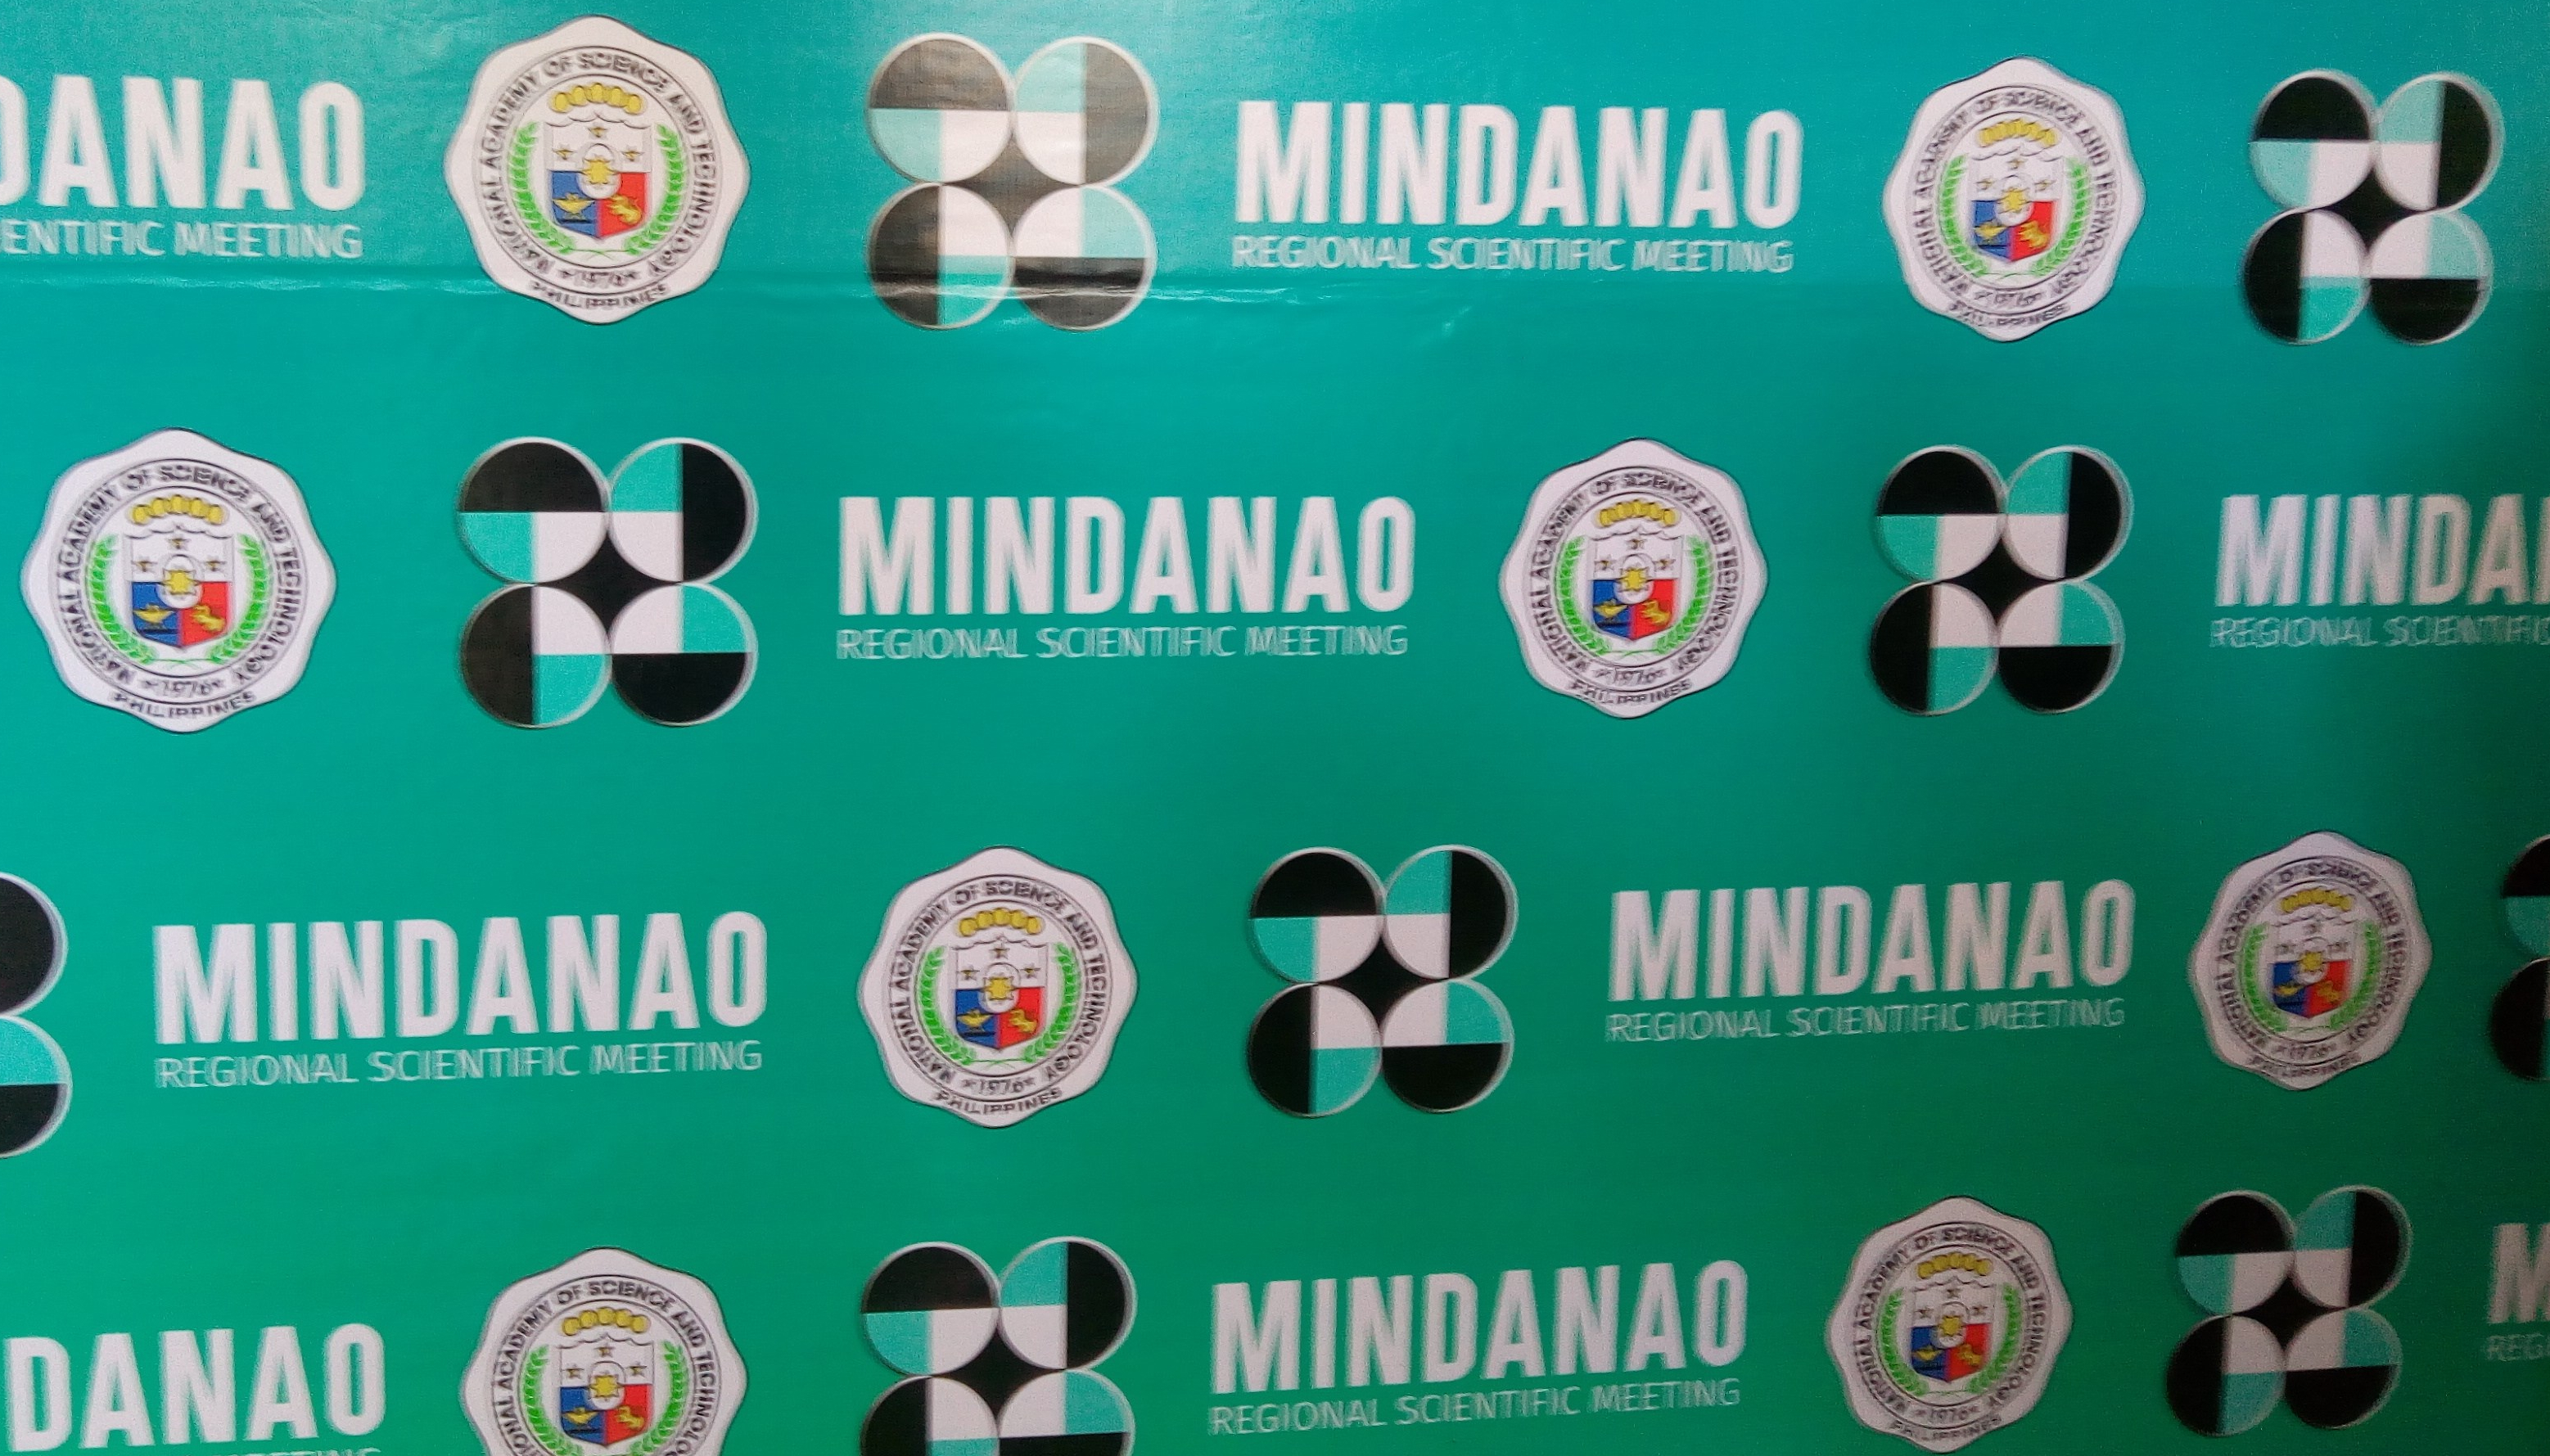 DOST Holds RSM in Mindanao, Drives Home Importance of S&T in Sustaining Environment